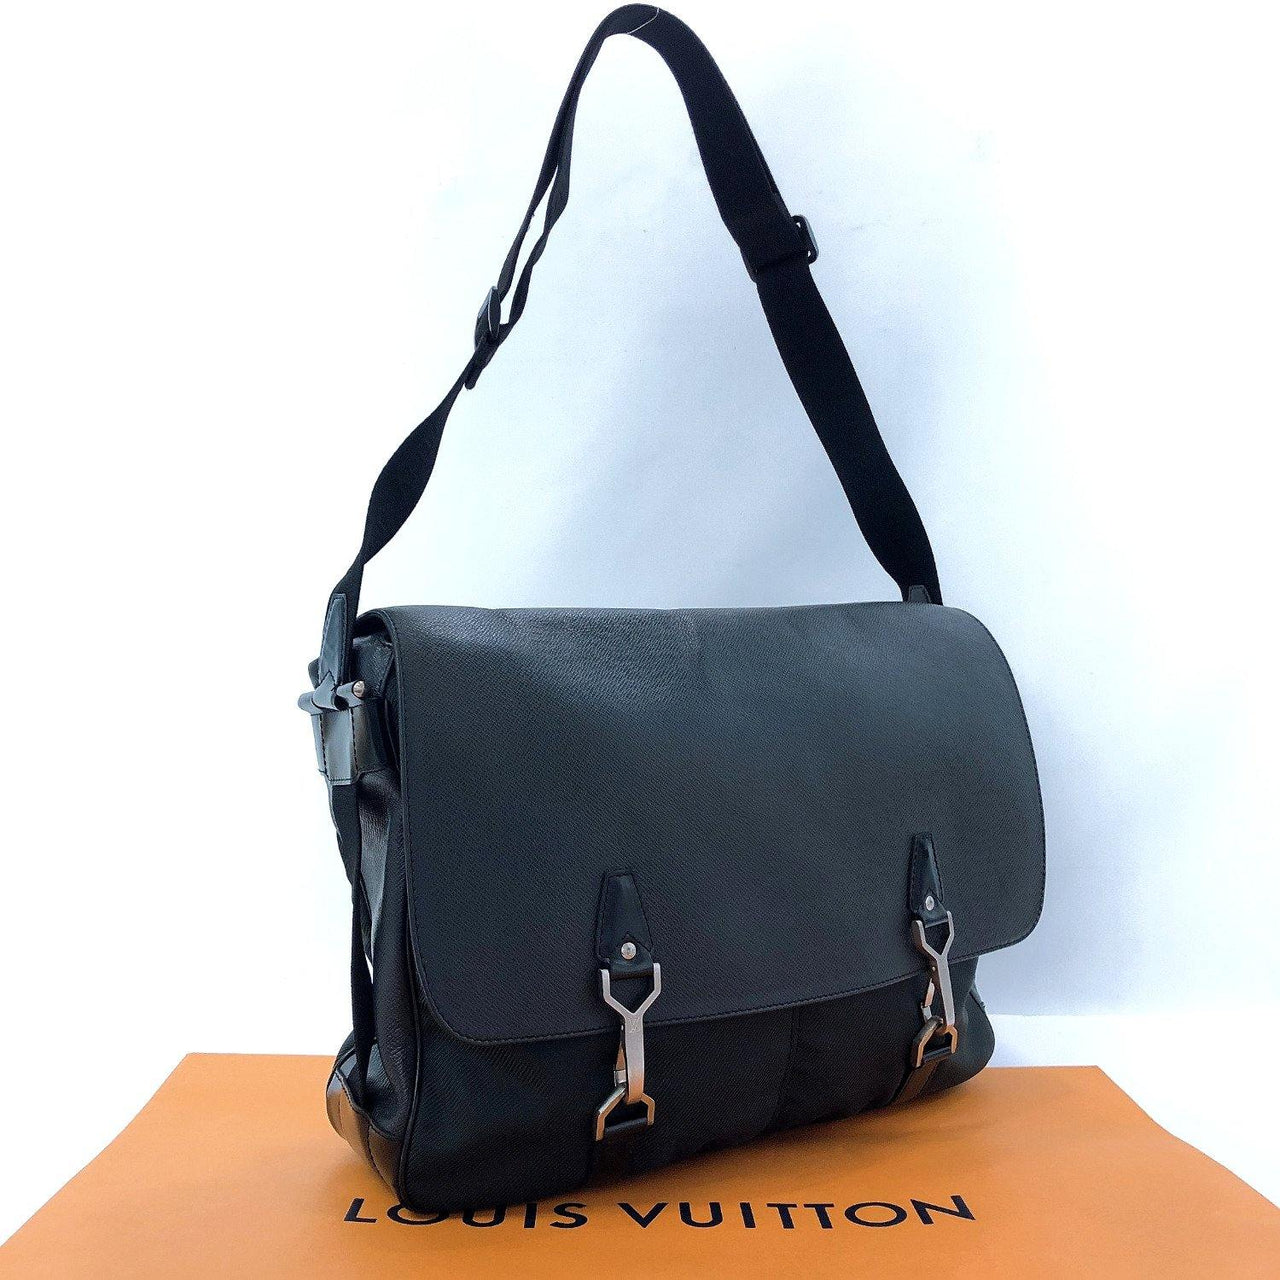 LOUIS VUITTON Shoulder Bag M30162 Del Soo Taiga black green mens Used - JP-BRANDS.com